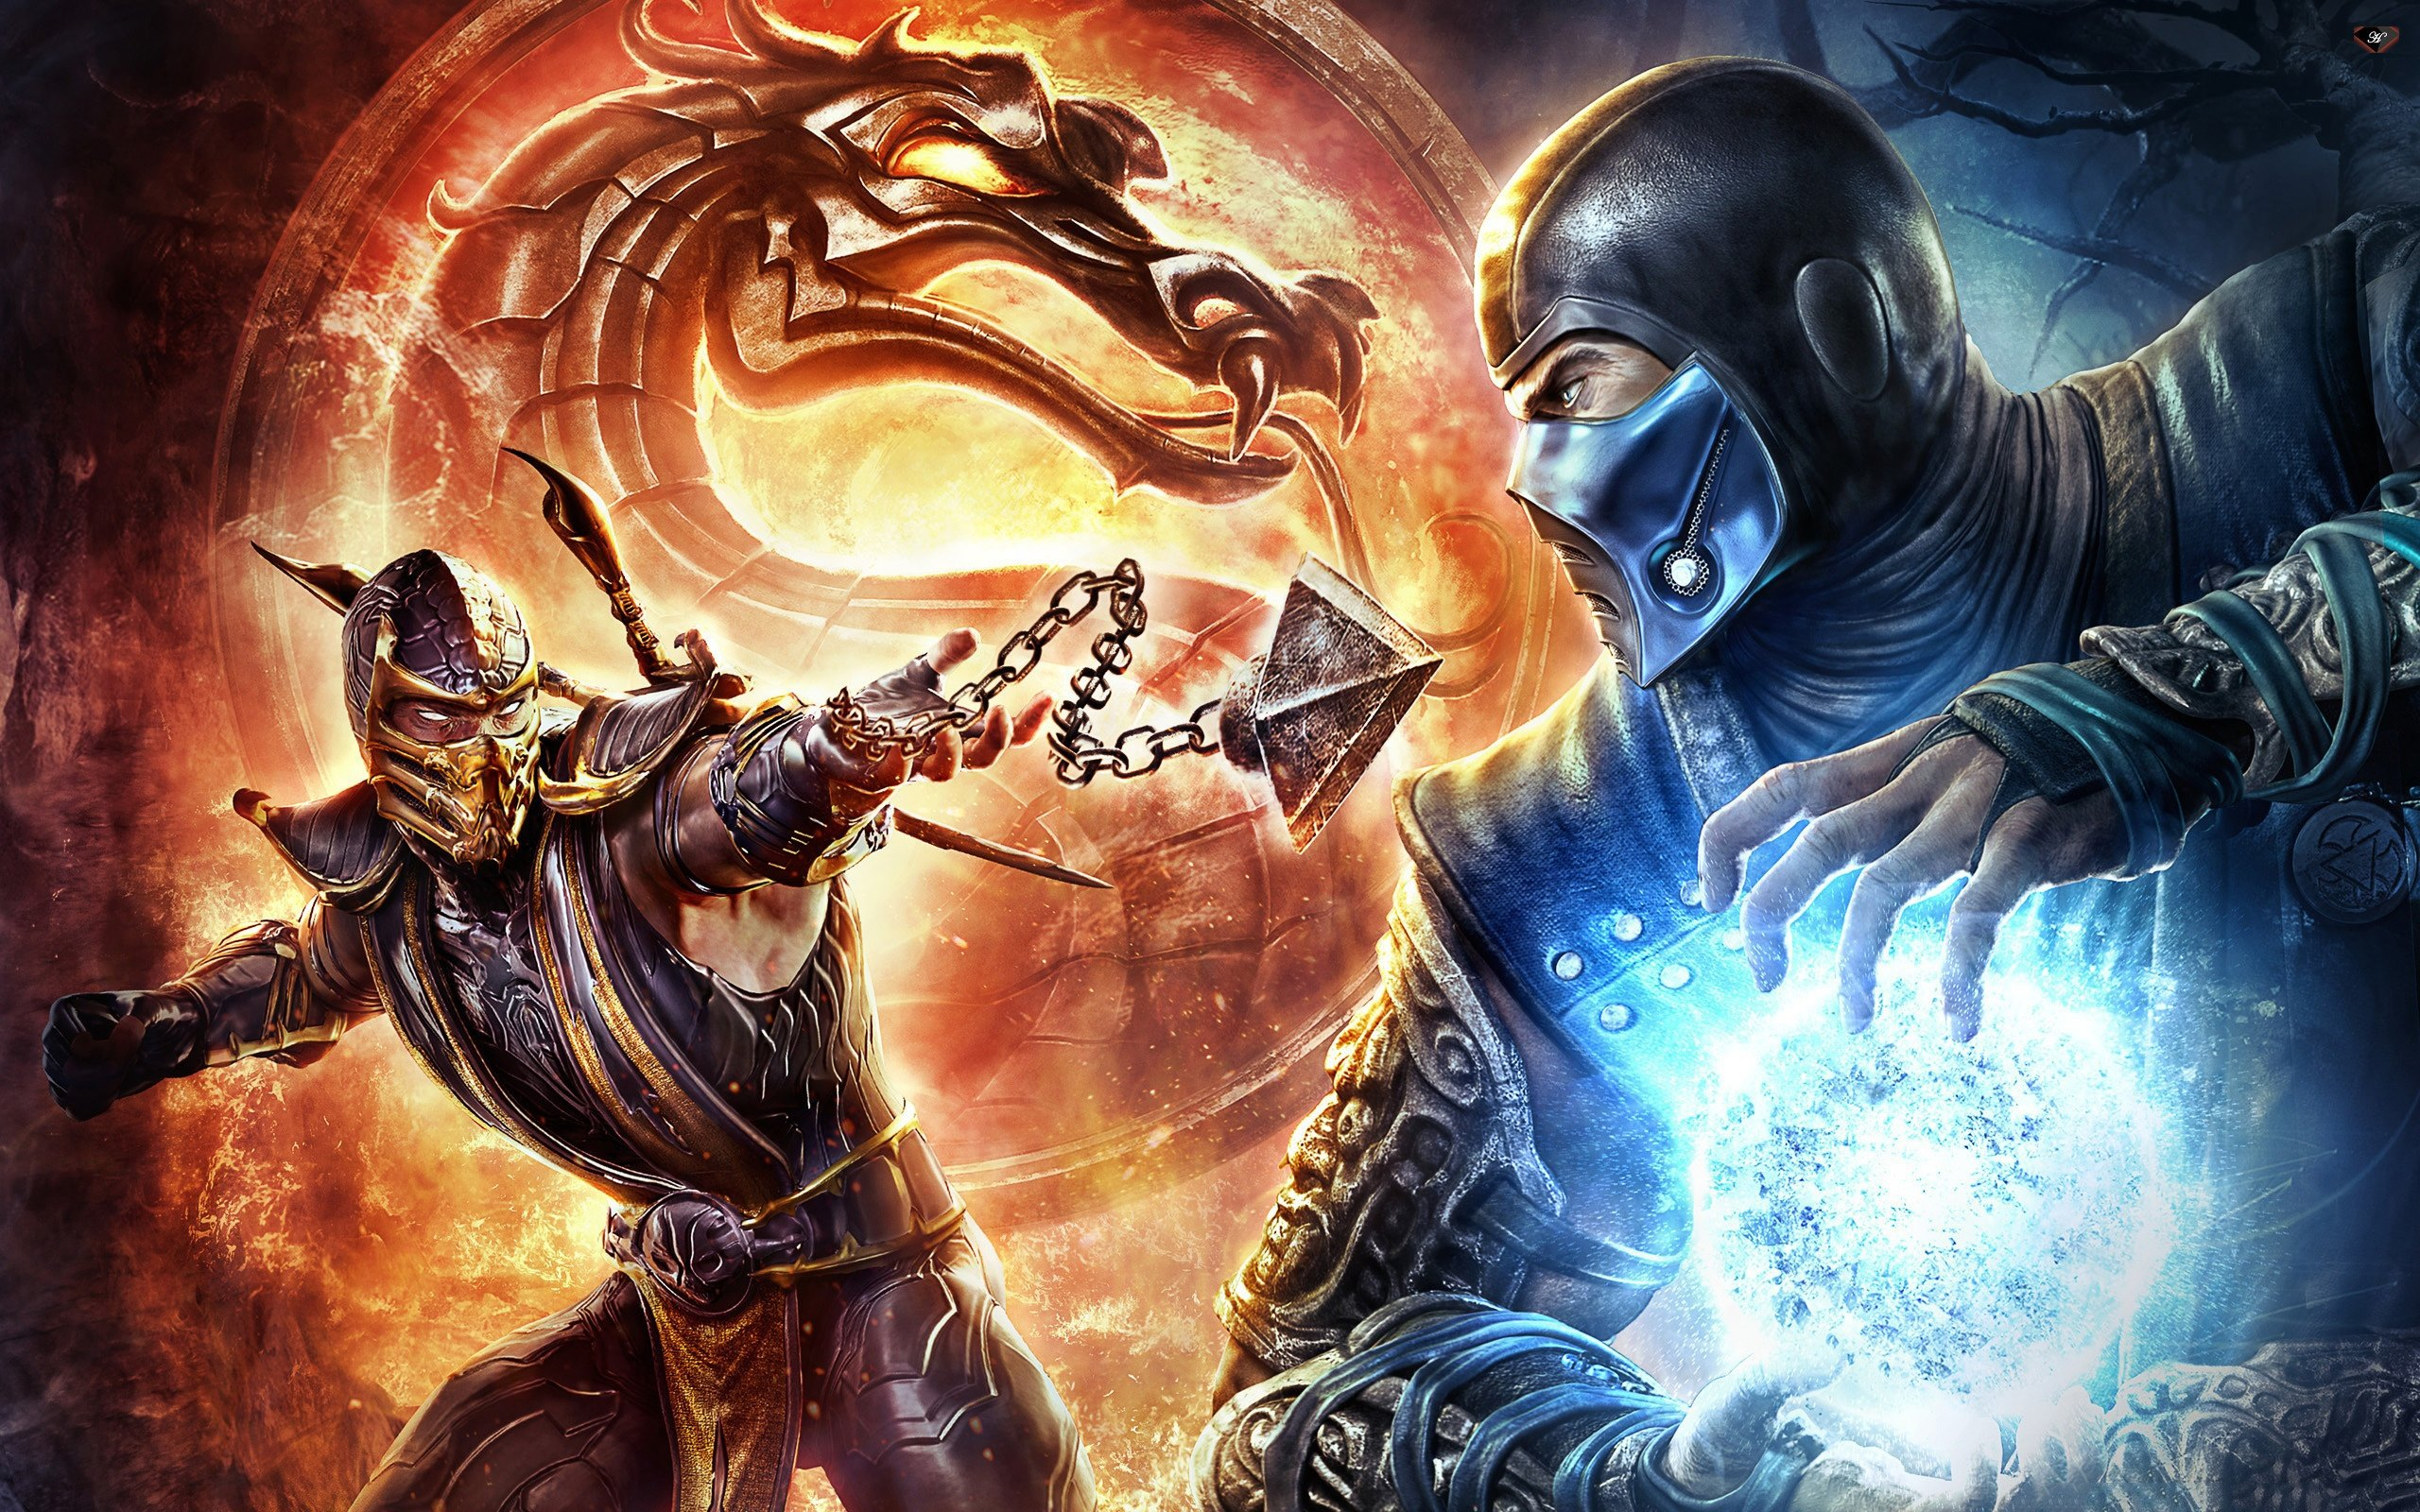 mortal kombat x scorpion vs sub zero wallpaper